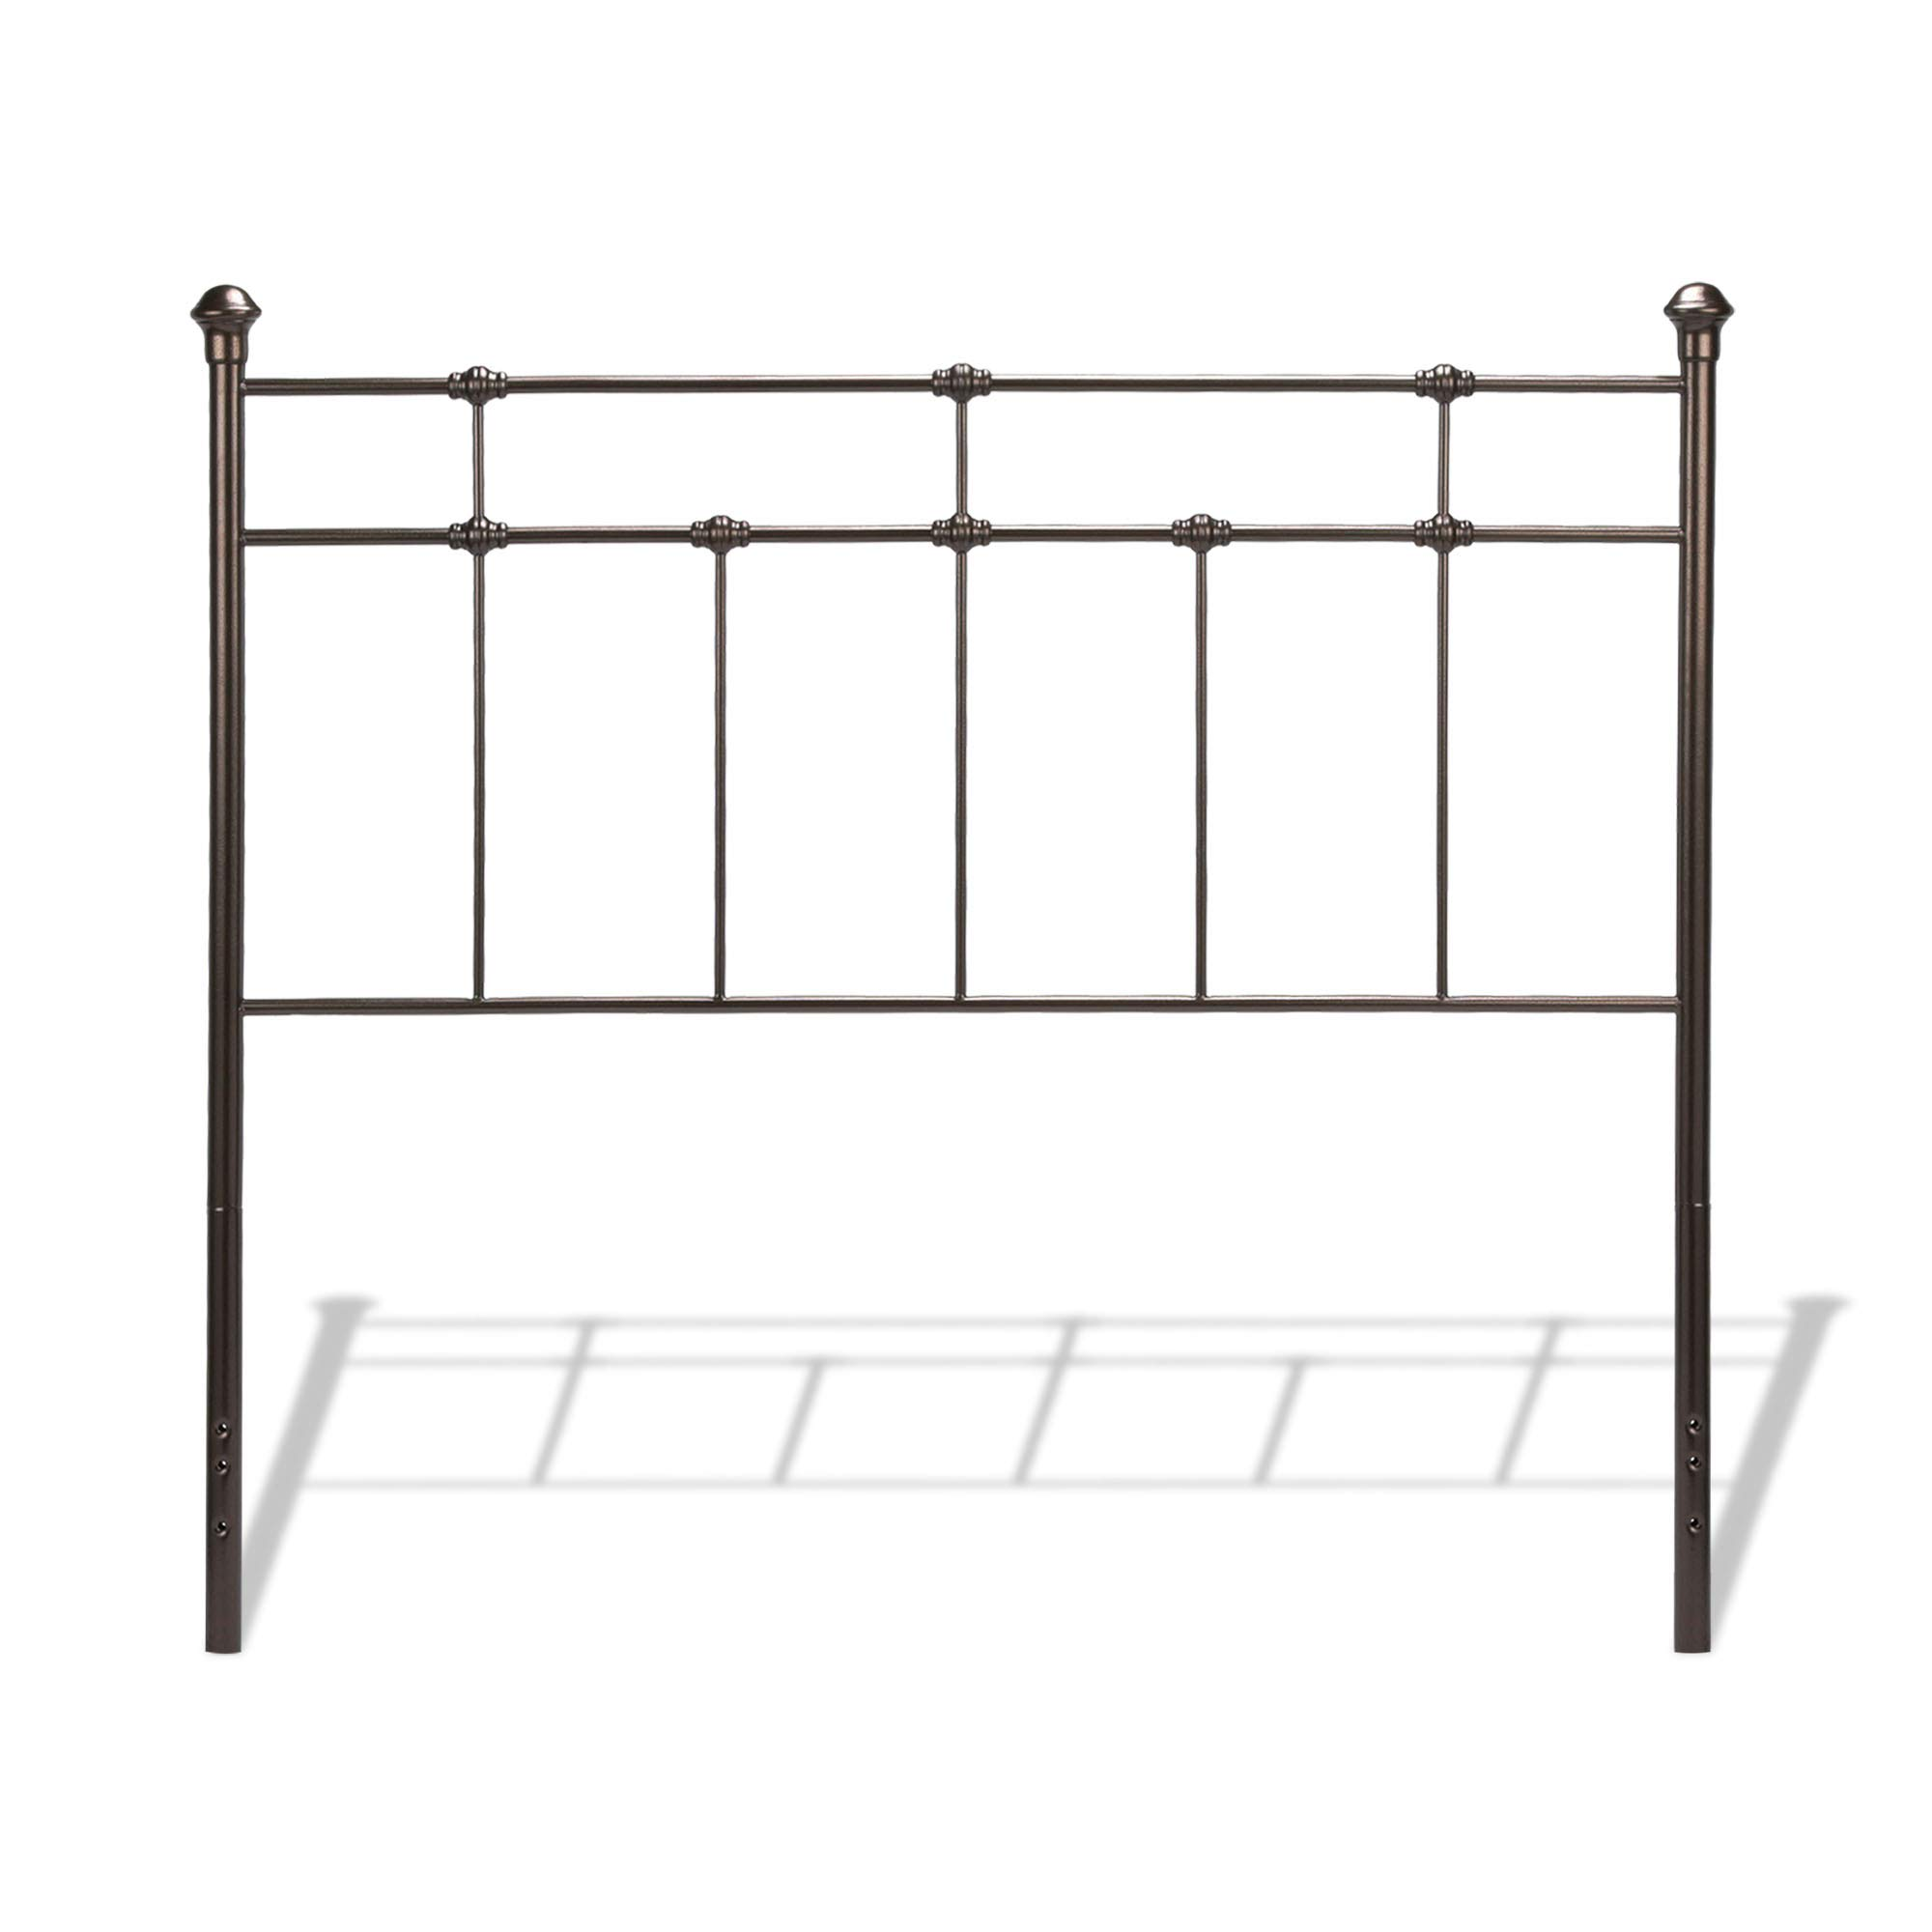 Leggett & Platt Dexter Metal Headboard Panel with Decorative Castings and Finial Posts, Hammered Brown Finish, King